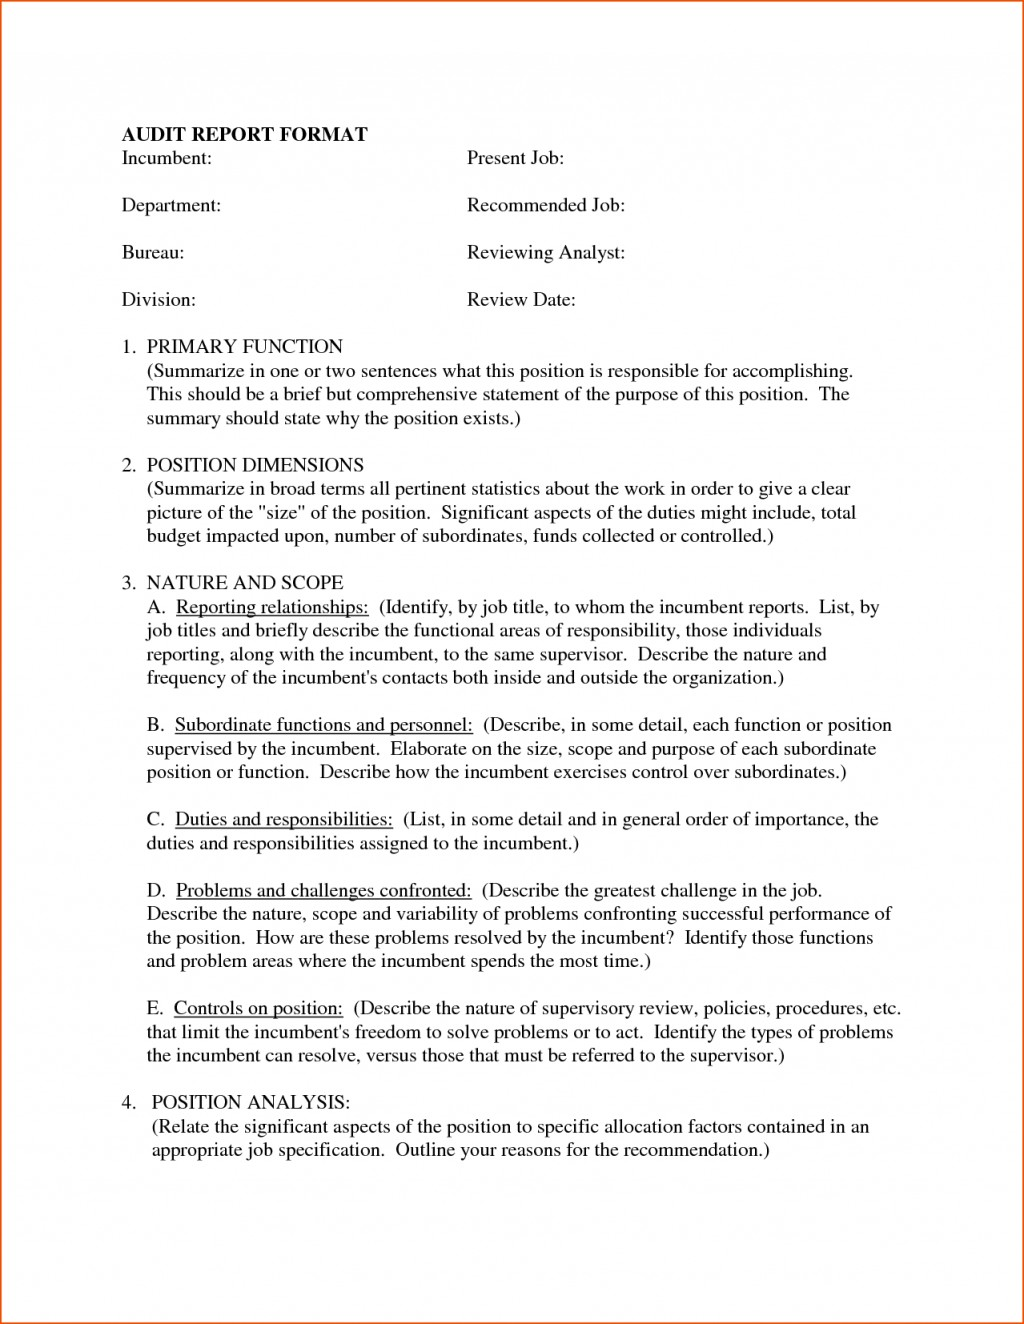 018 Importance Of Healthy Living Essay Business Format Structure Repo Proper Writing Astounding Large